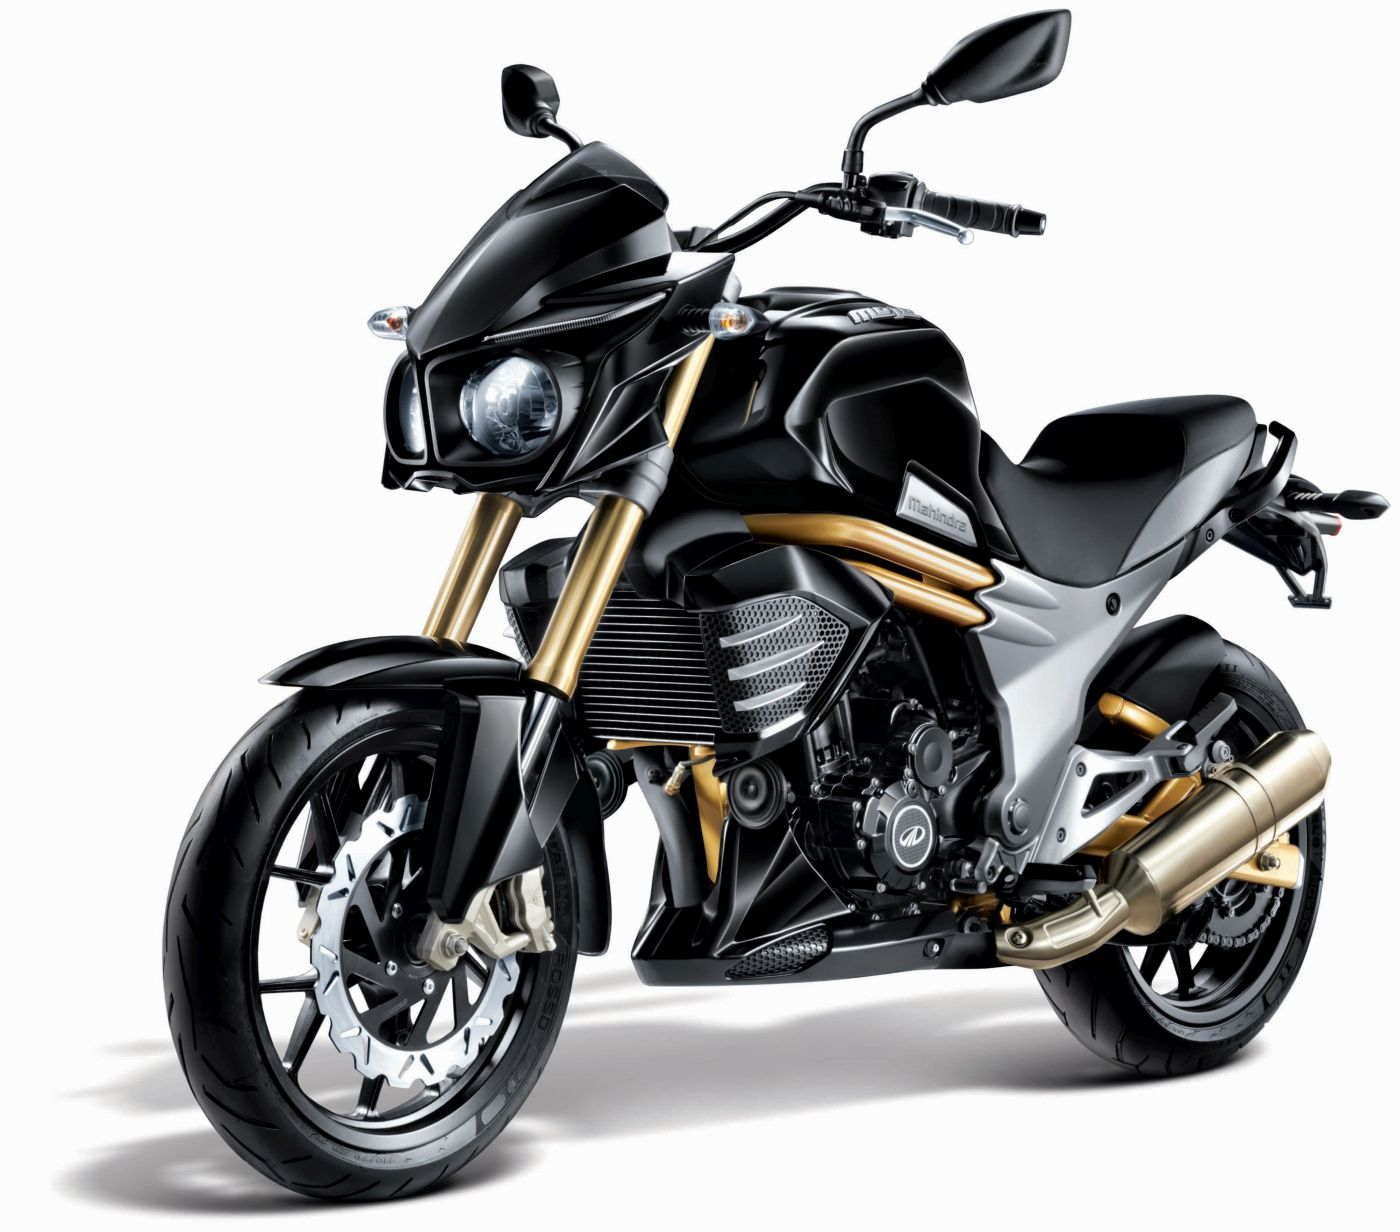 Mahindra Mojo 300 Cc Bike Twin Pod Headlamp ₹ 1 58 Lakh